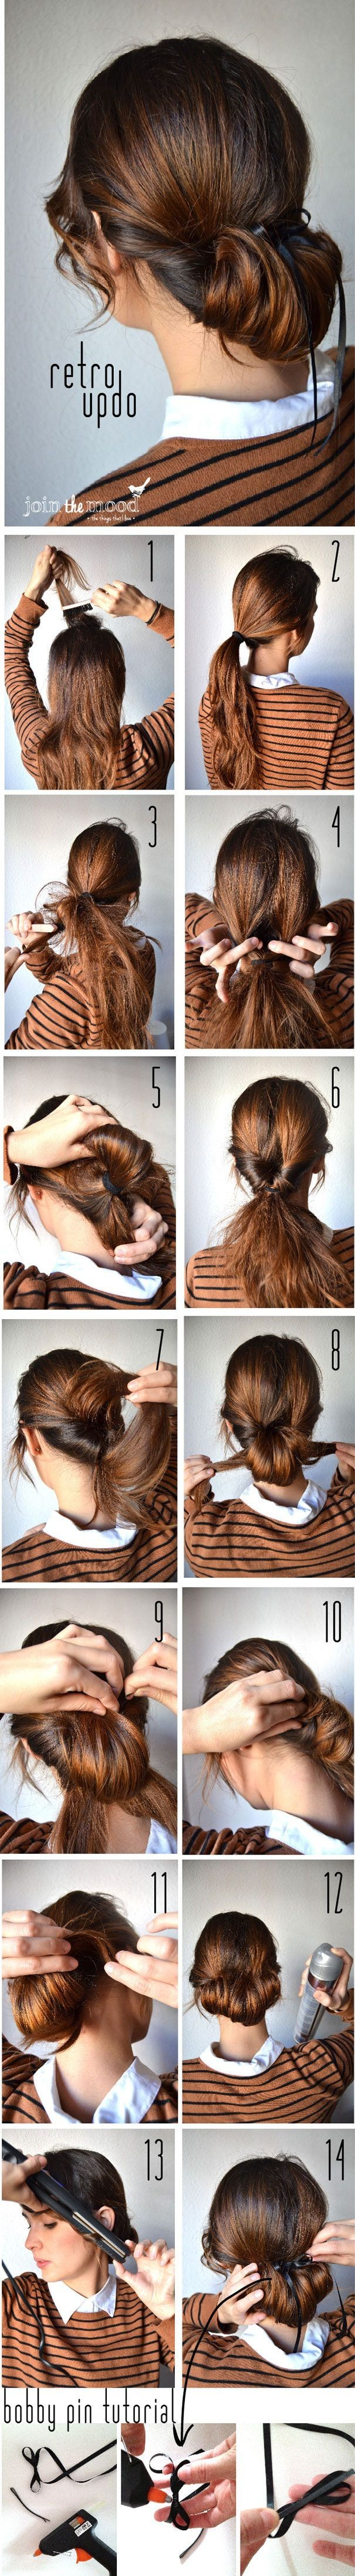 Retro Updo Tutorial